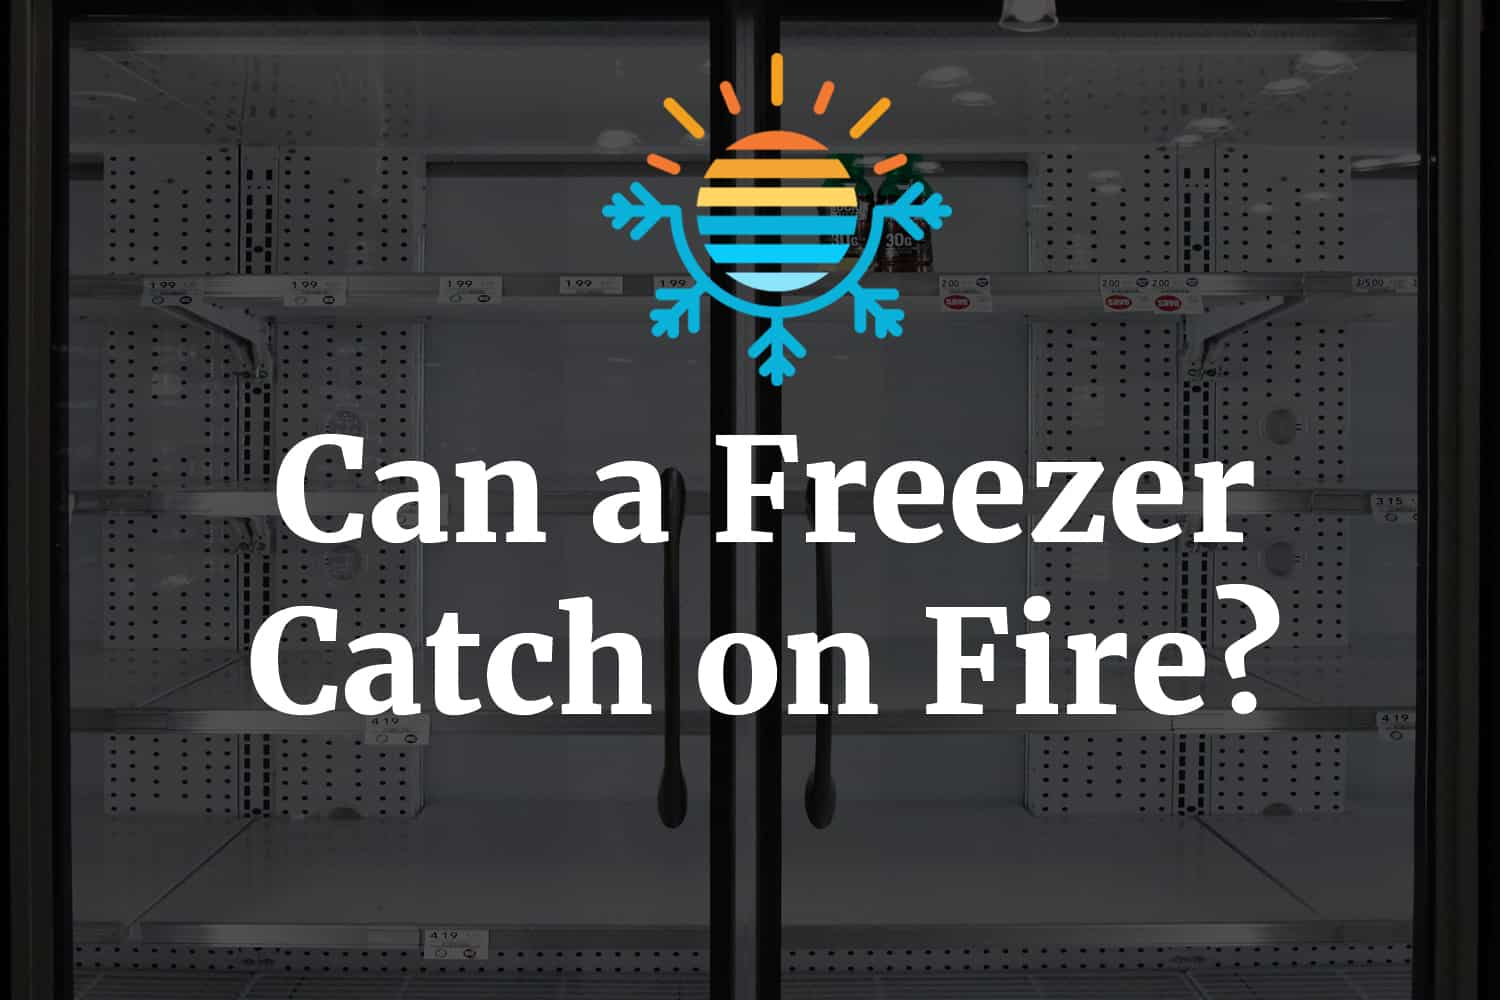 Can a Freezer catch on fire